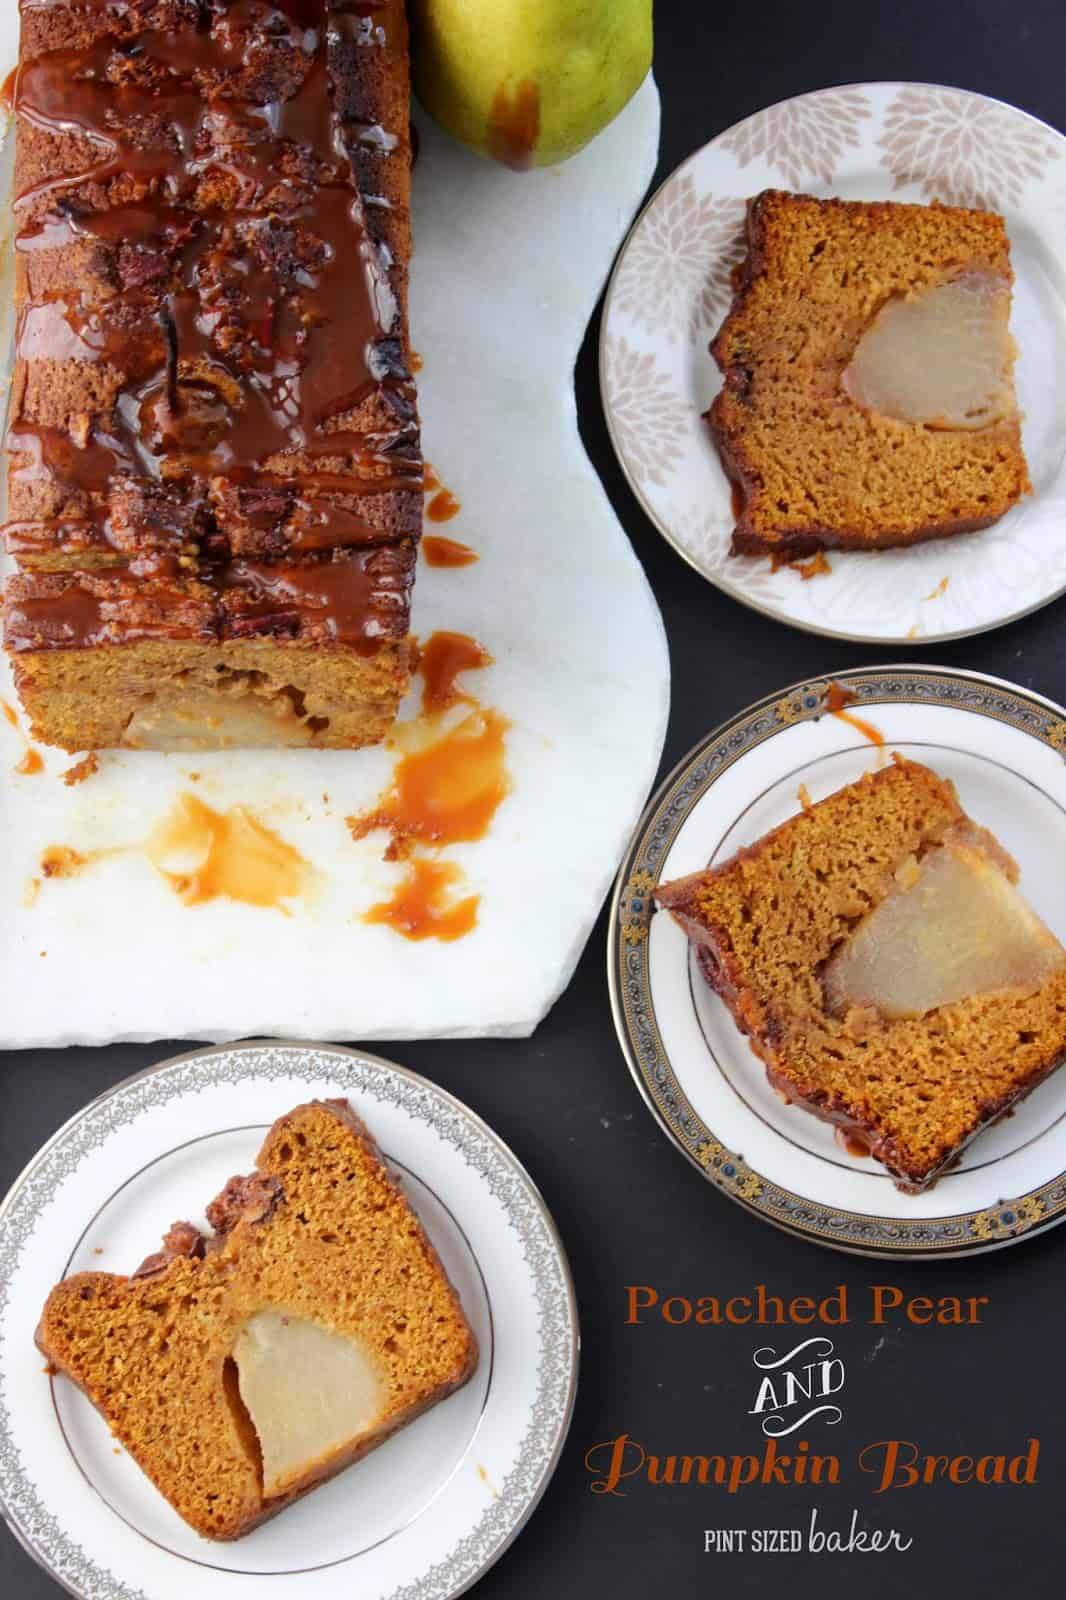 Poached Pear and Pumpkin Bread